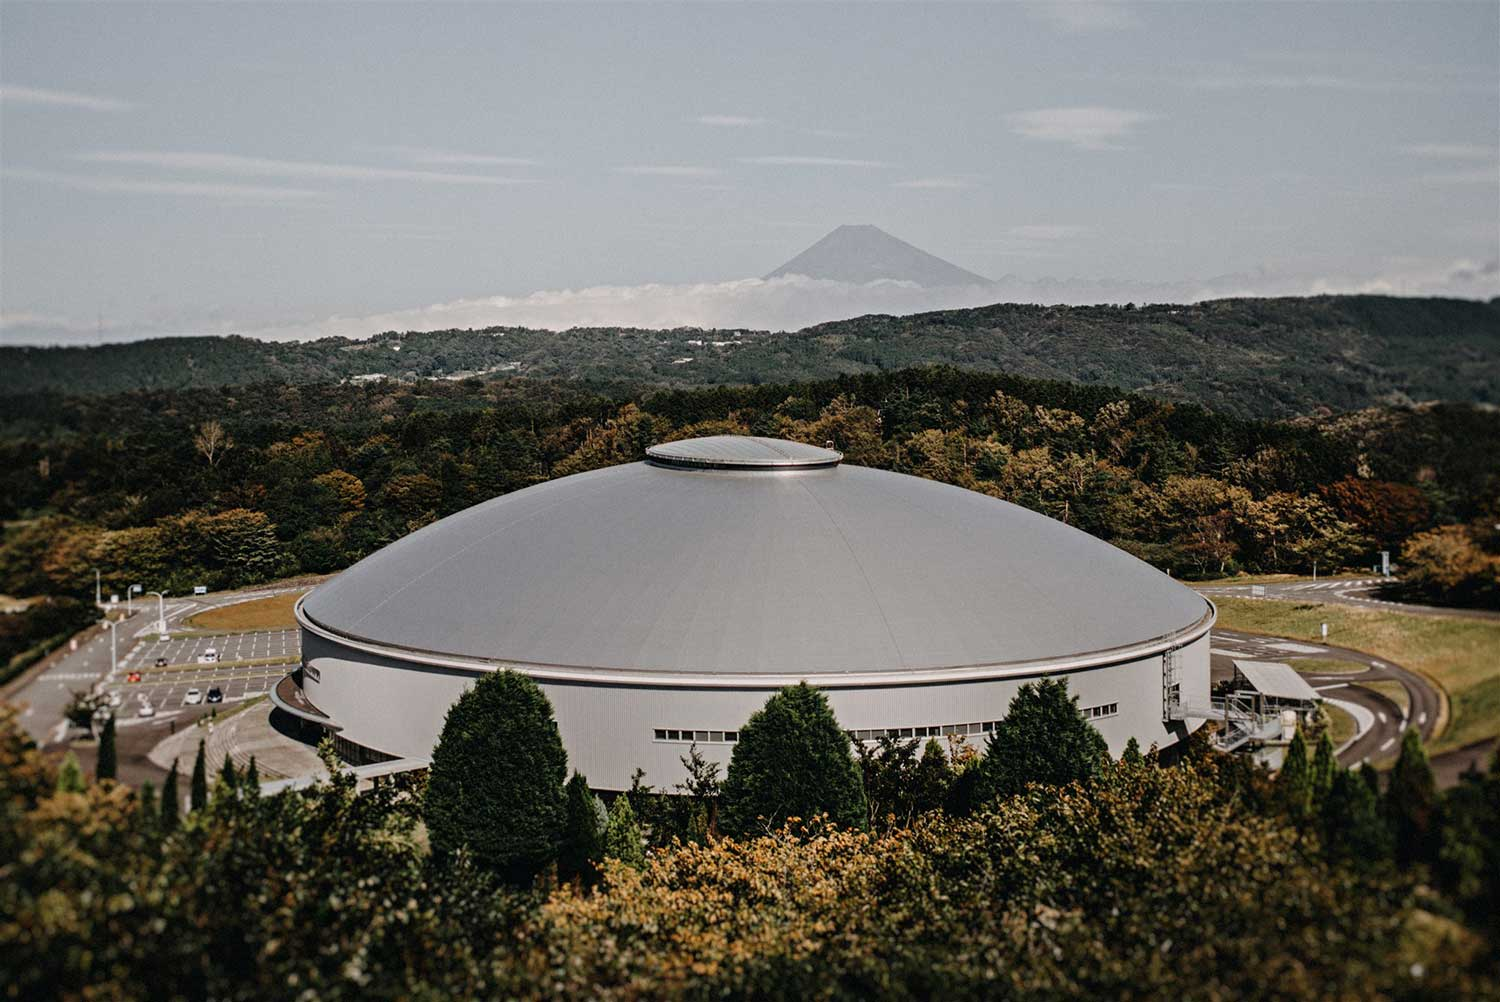 Exterior view of Izu Velodrome sitting amongst the forest and Mount Fuji in Japan